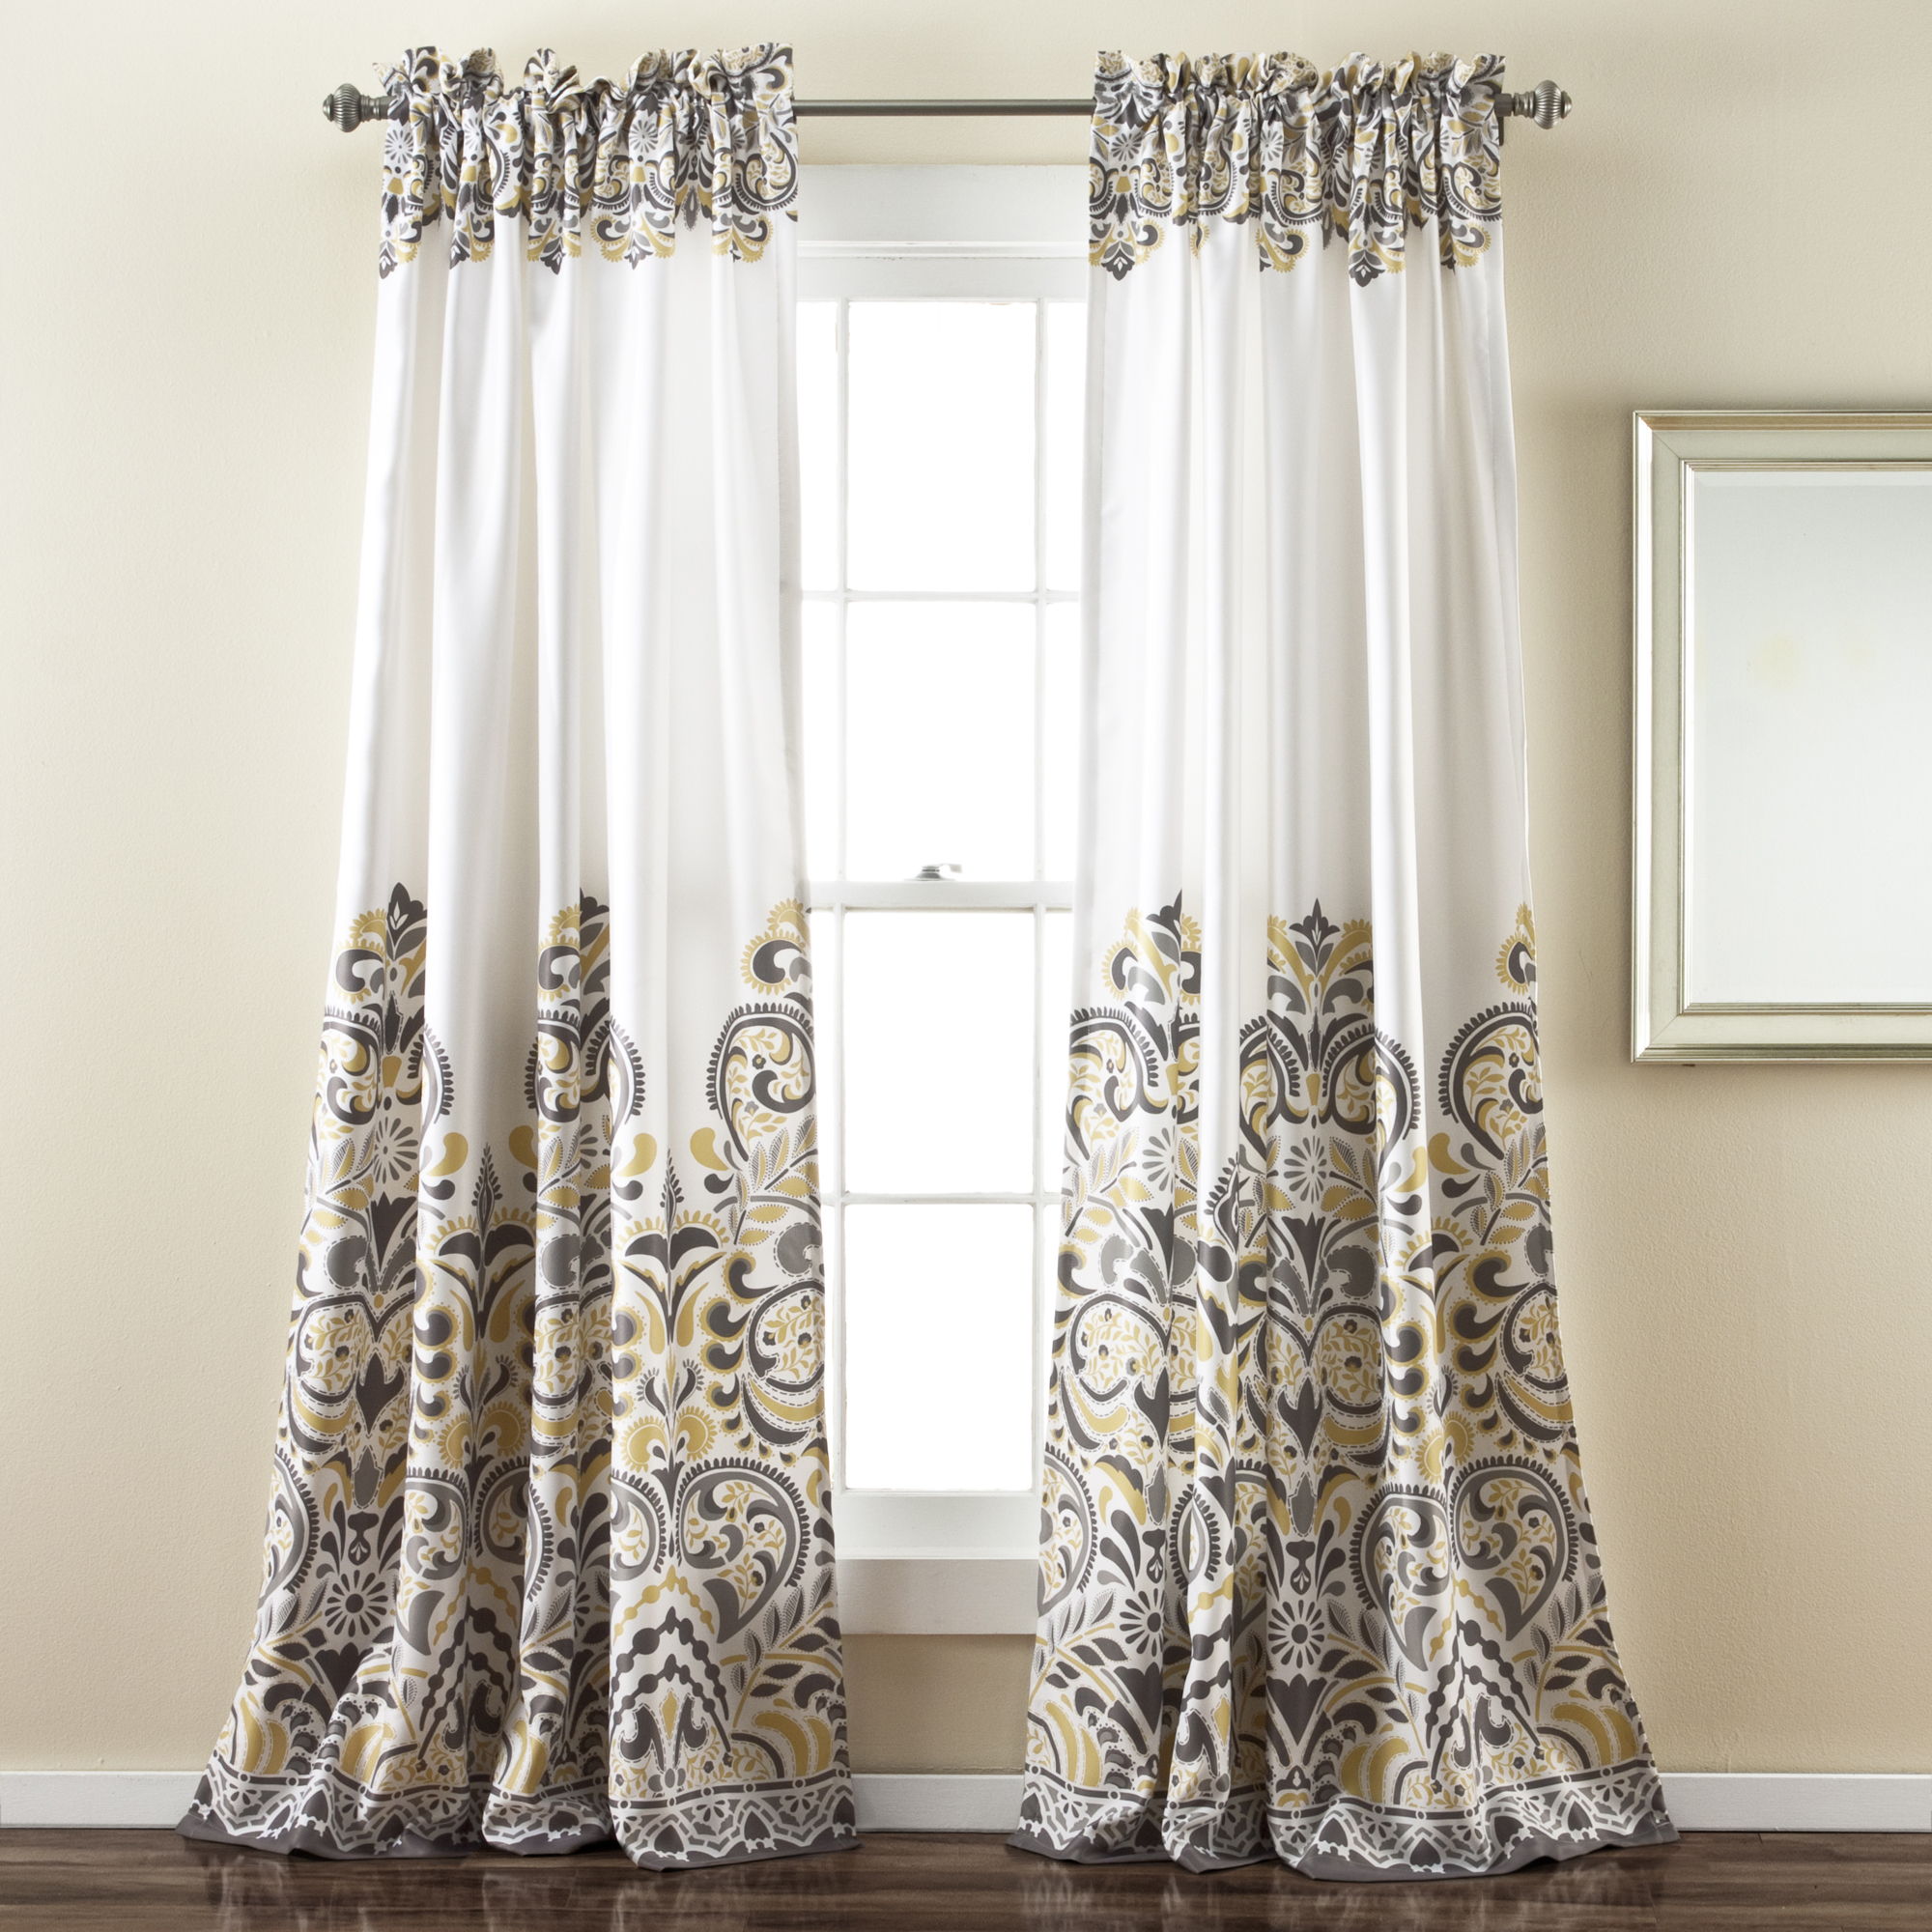 Well Liked Rowley Birds Room Darkening Curtain Panel Pairs For Clara Room Darkening Window Panel Gray/ Yellow Set 52x84+ (View 17 of 20)